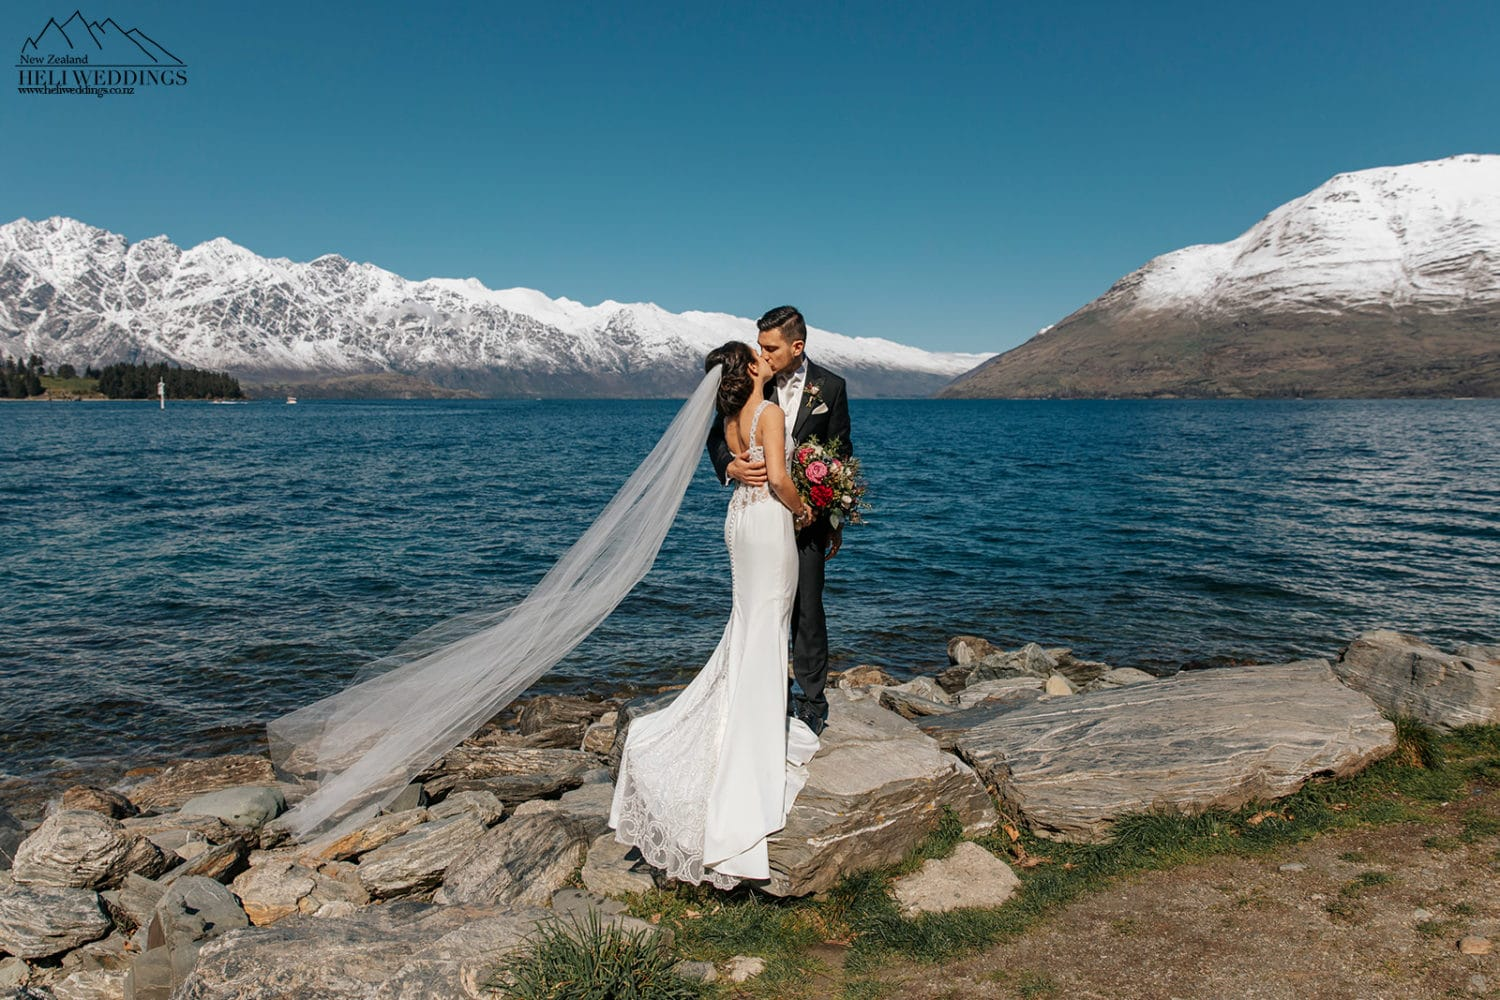 Wedding by the lake in Queenstown